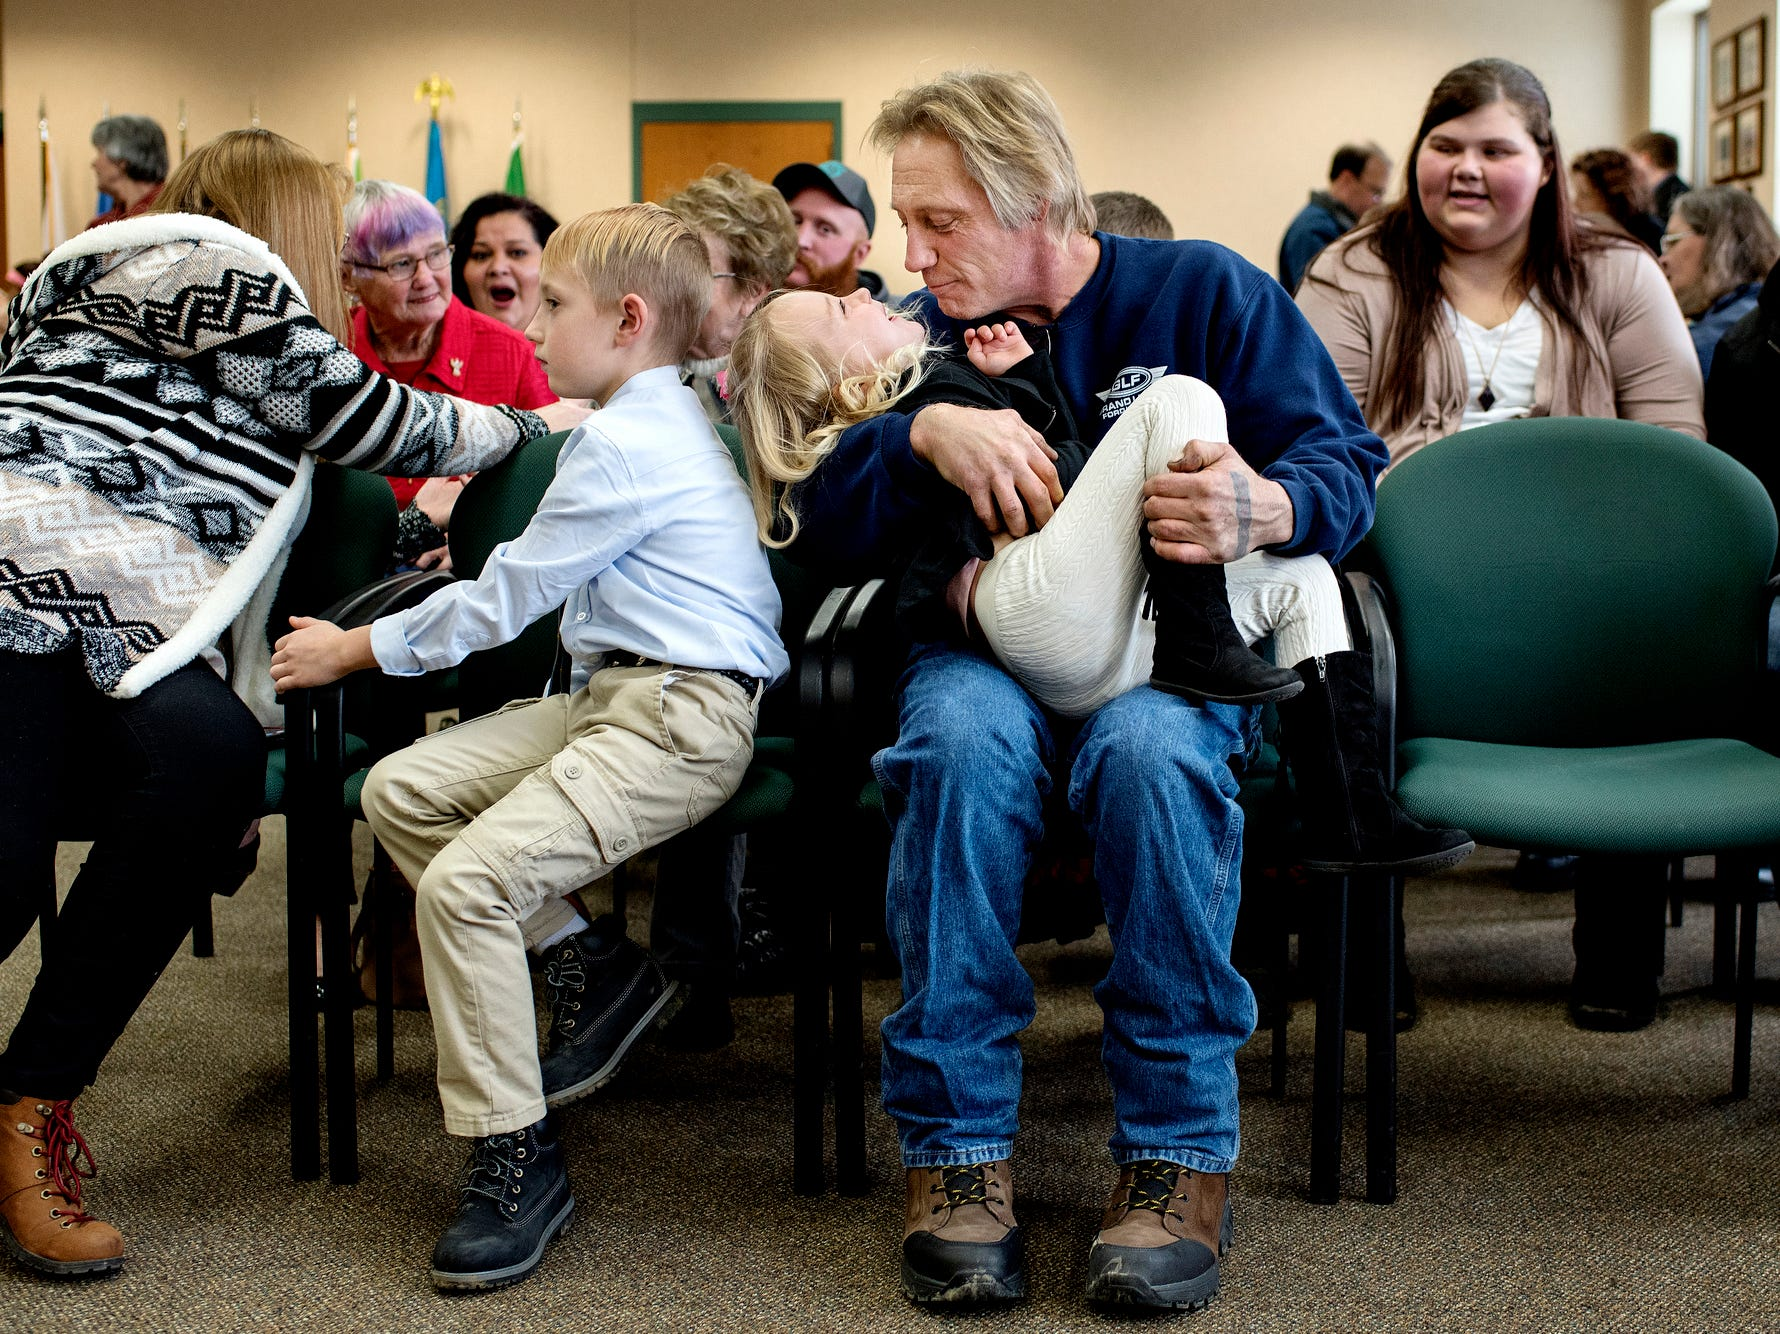 Durwood Fletcher, right, cradles Alayna, 4, as he and his wife Lisa, left, prepare to finalize the adoption of Alayna and her 7-year-old brother Austin, second from left, during a Michigan Adoption Day ceremony at the Clinton County Courthouse in St. Johns. Four families finalized the adoptions of six children.